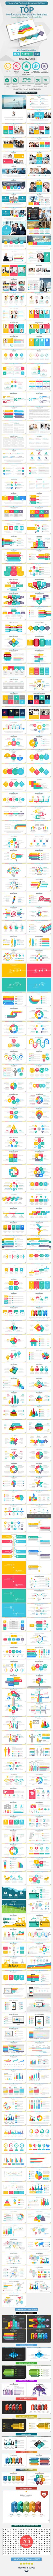 Top PowerPoint Presentation Template (PowerPoint Templates)